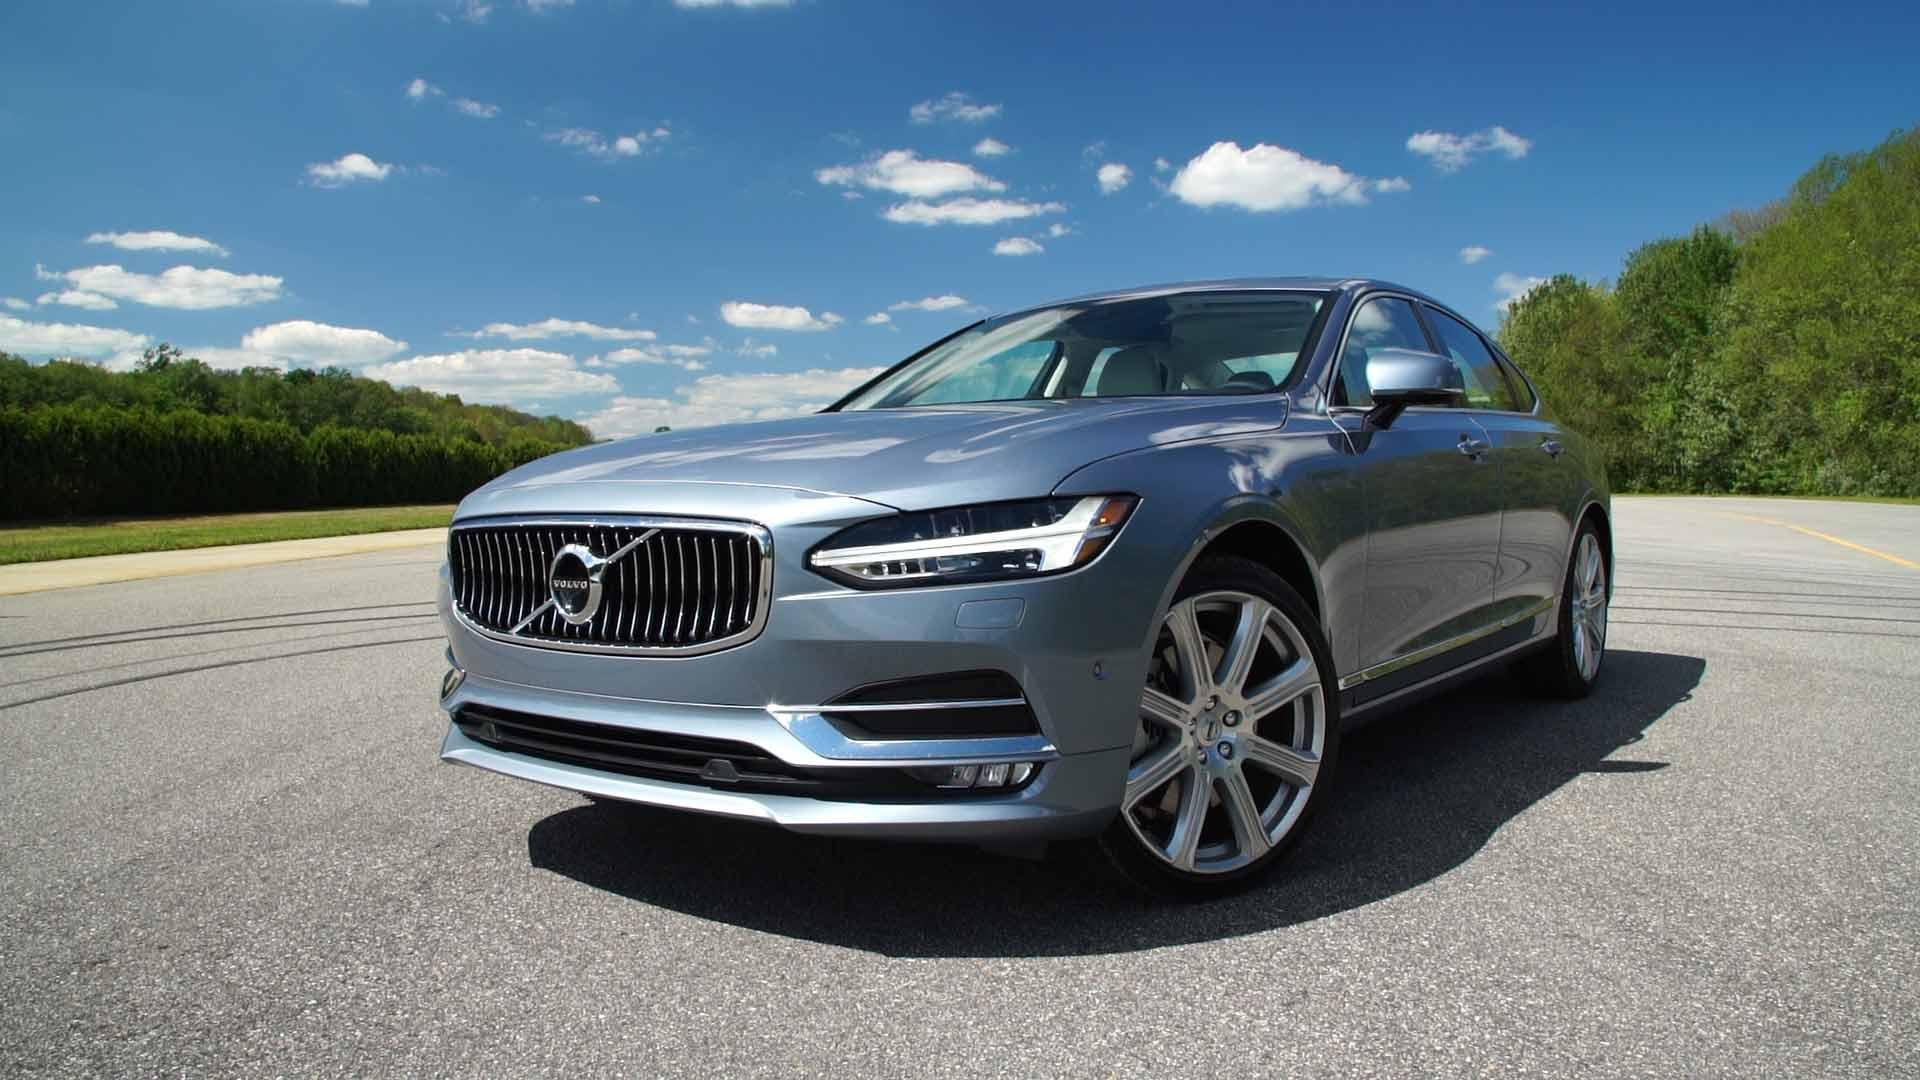 2017 Volvo S90 Review A Diamond Still In The Rough Consumer Reports 5 Cylinder Engine Problems